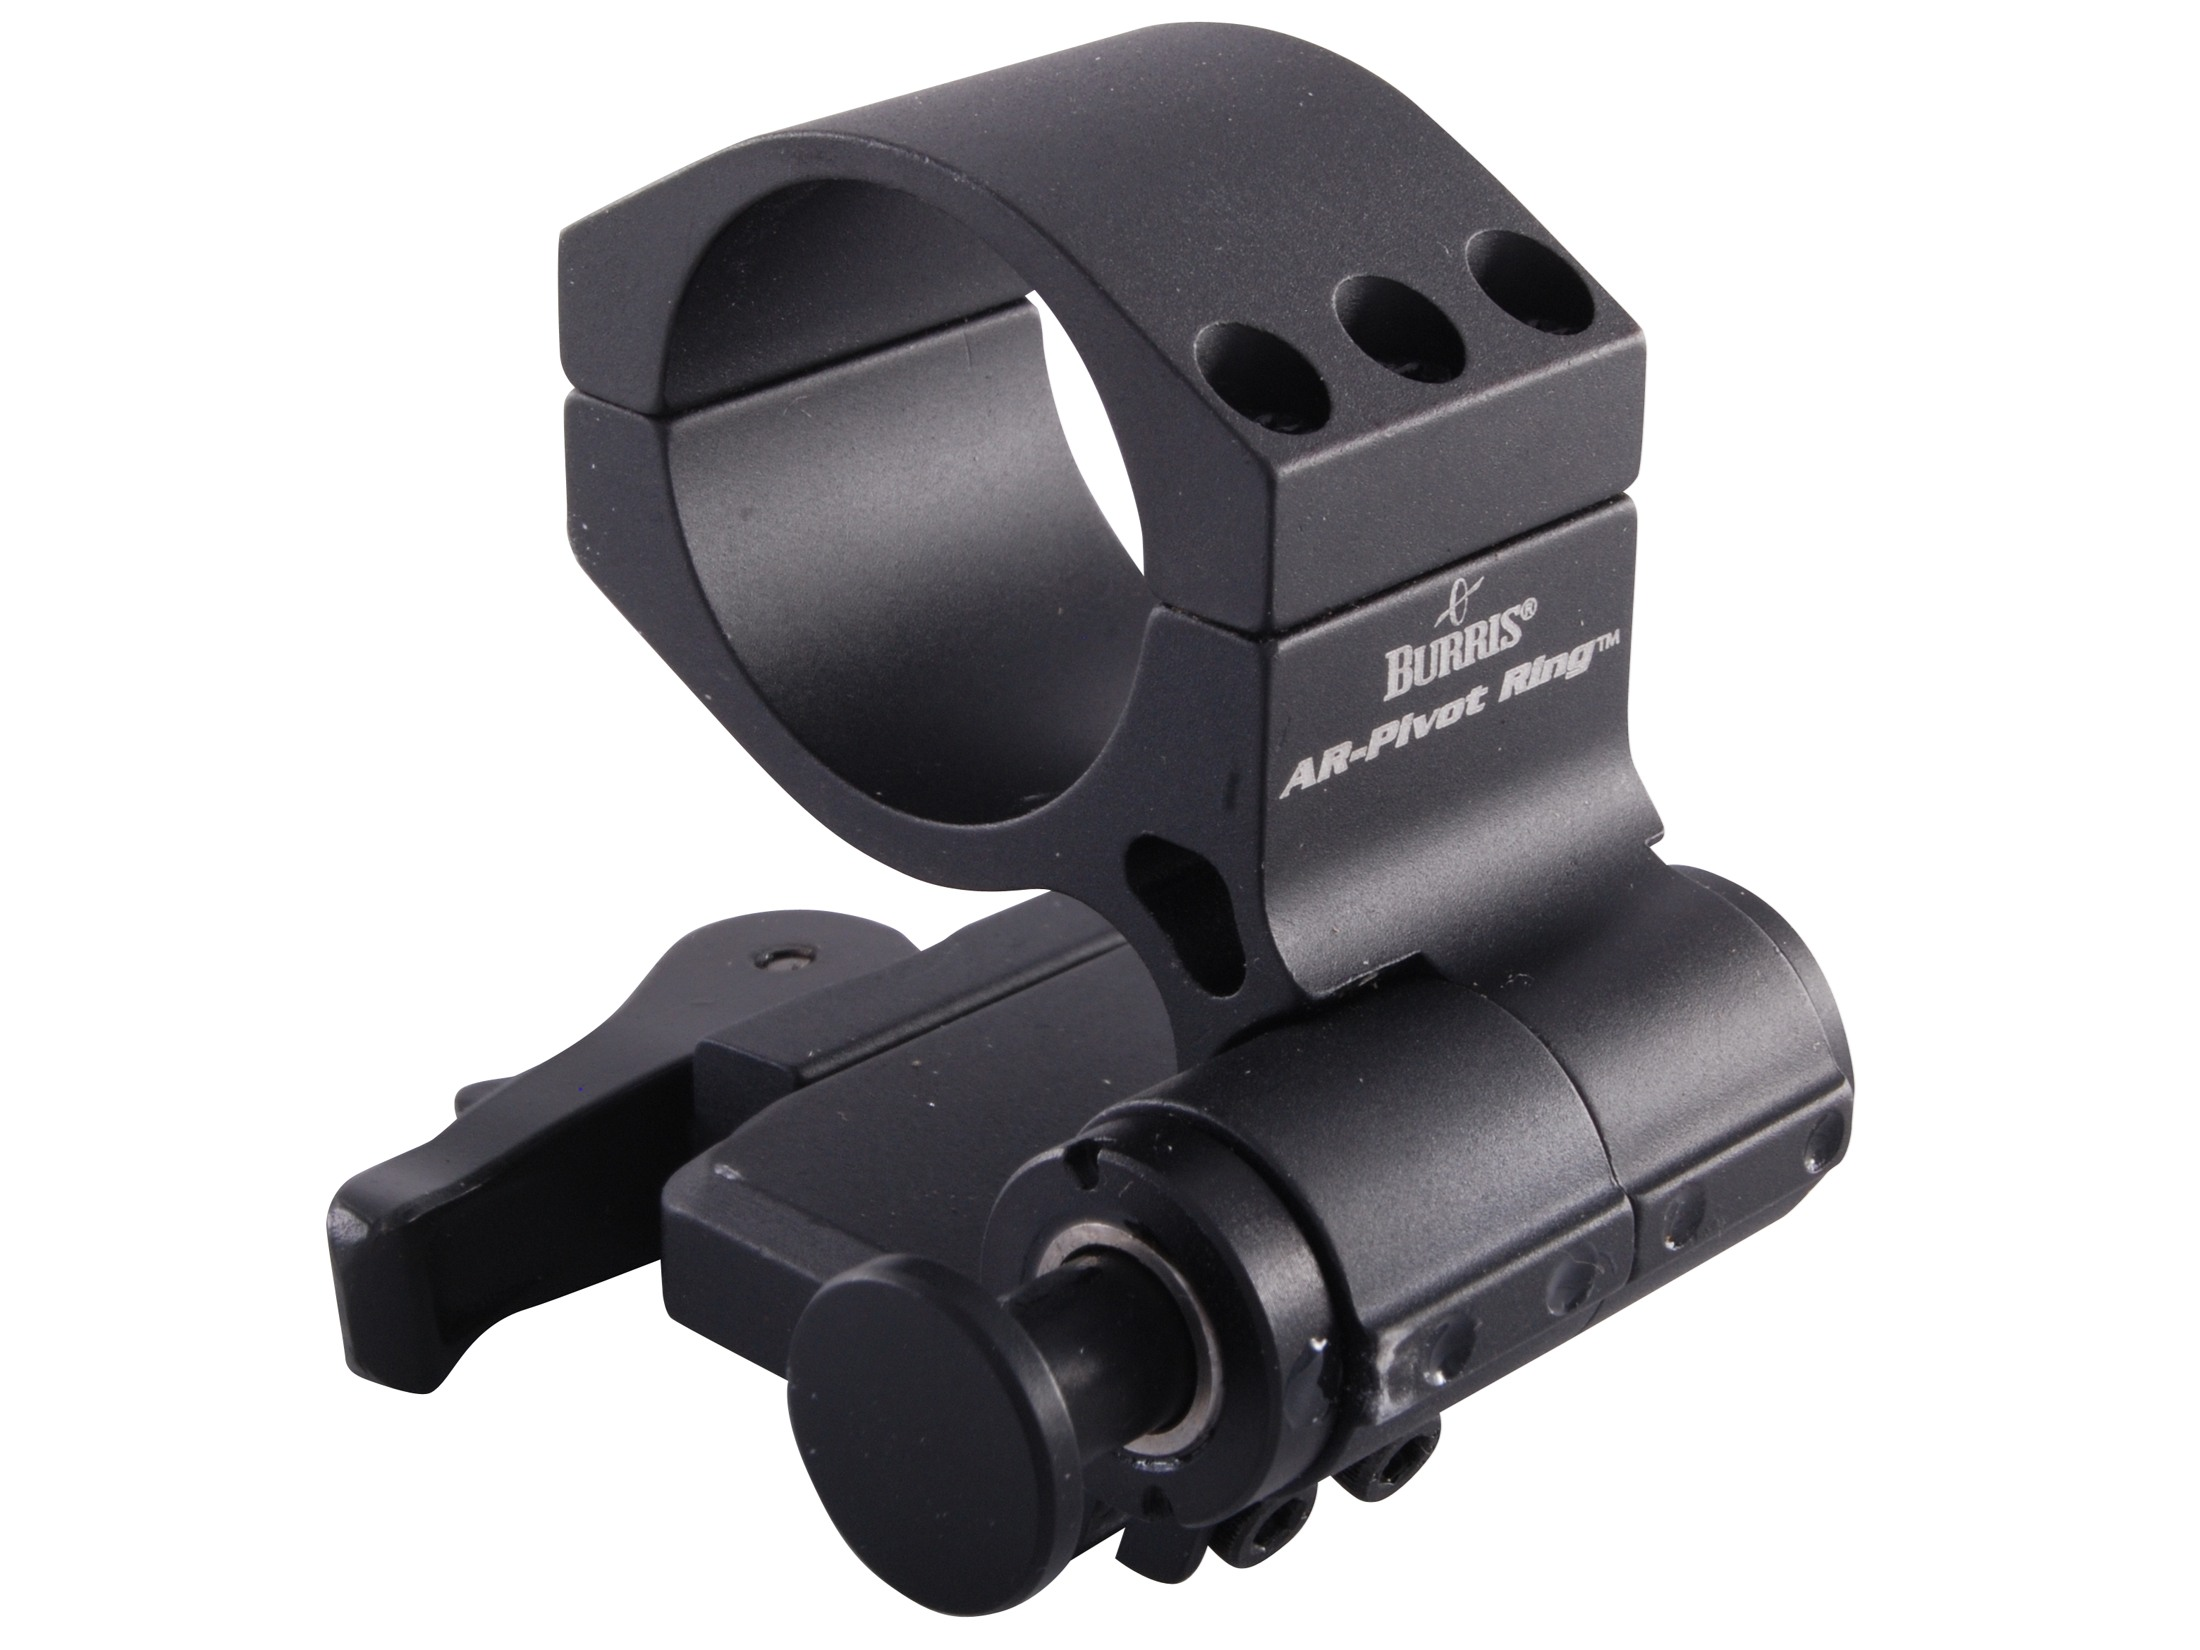 Aimpoint Red Dot & Burris tripler setup - Optics & Mounts